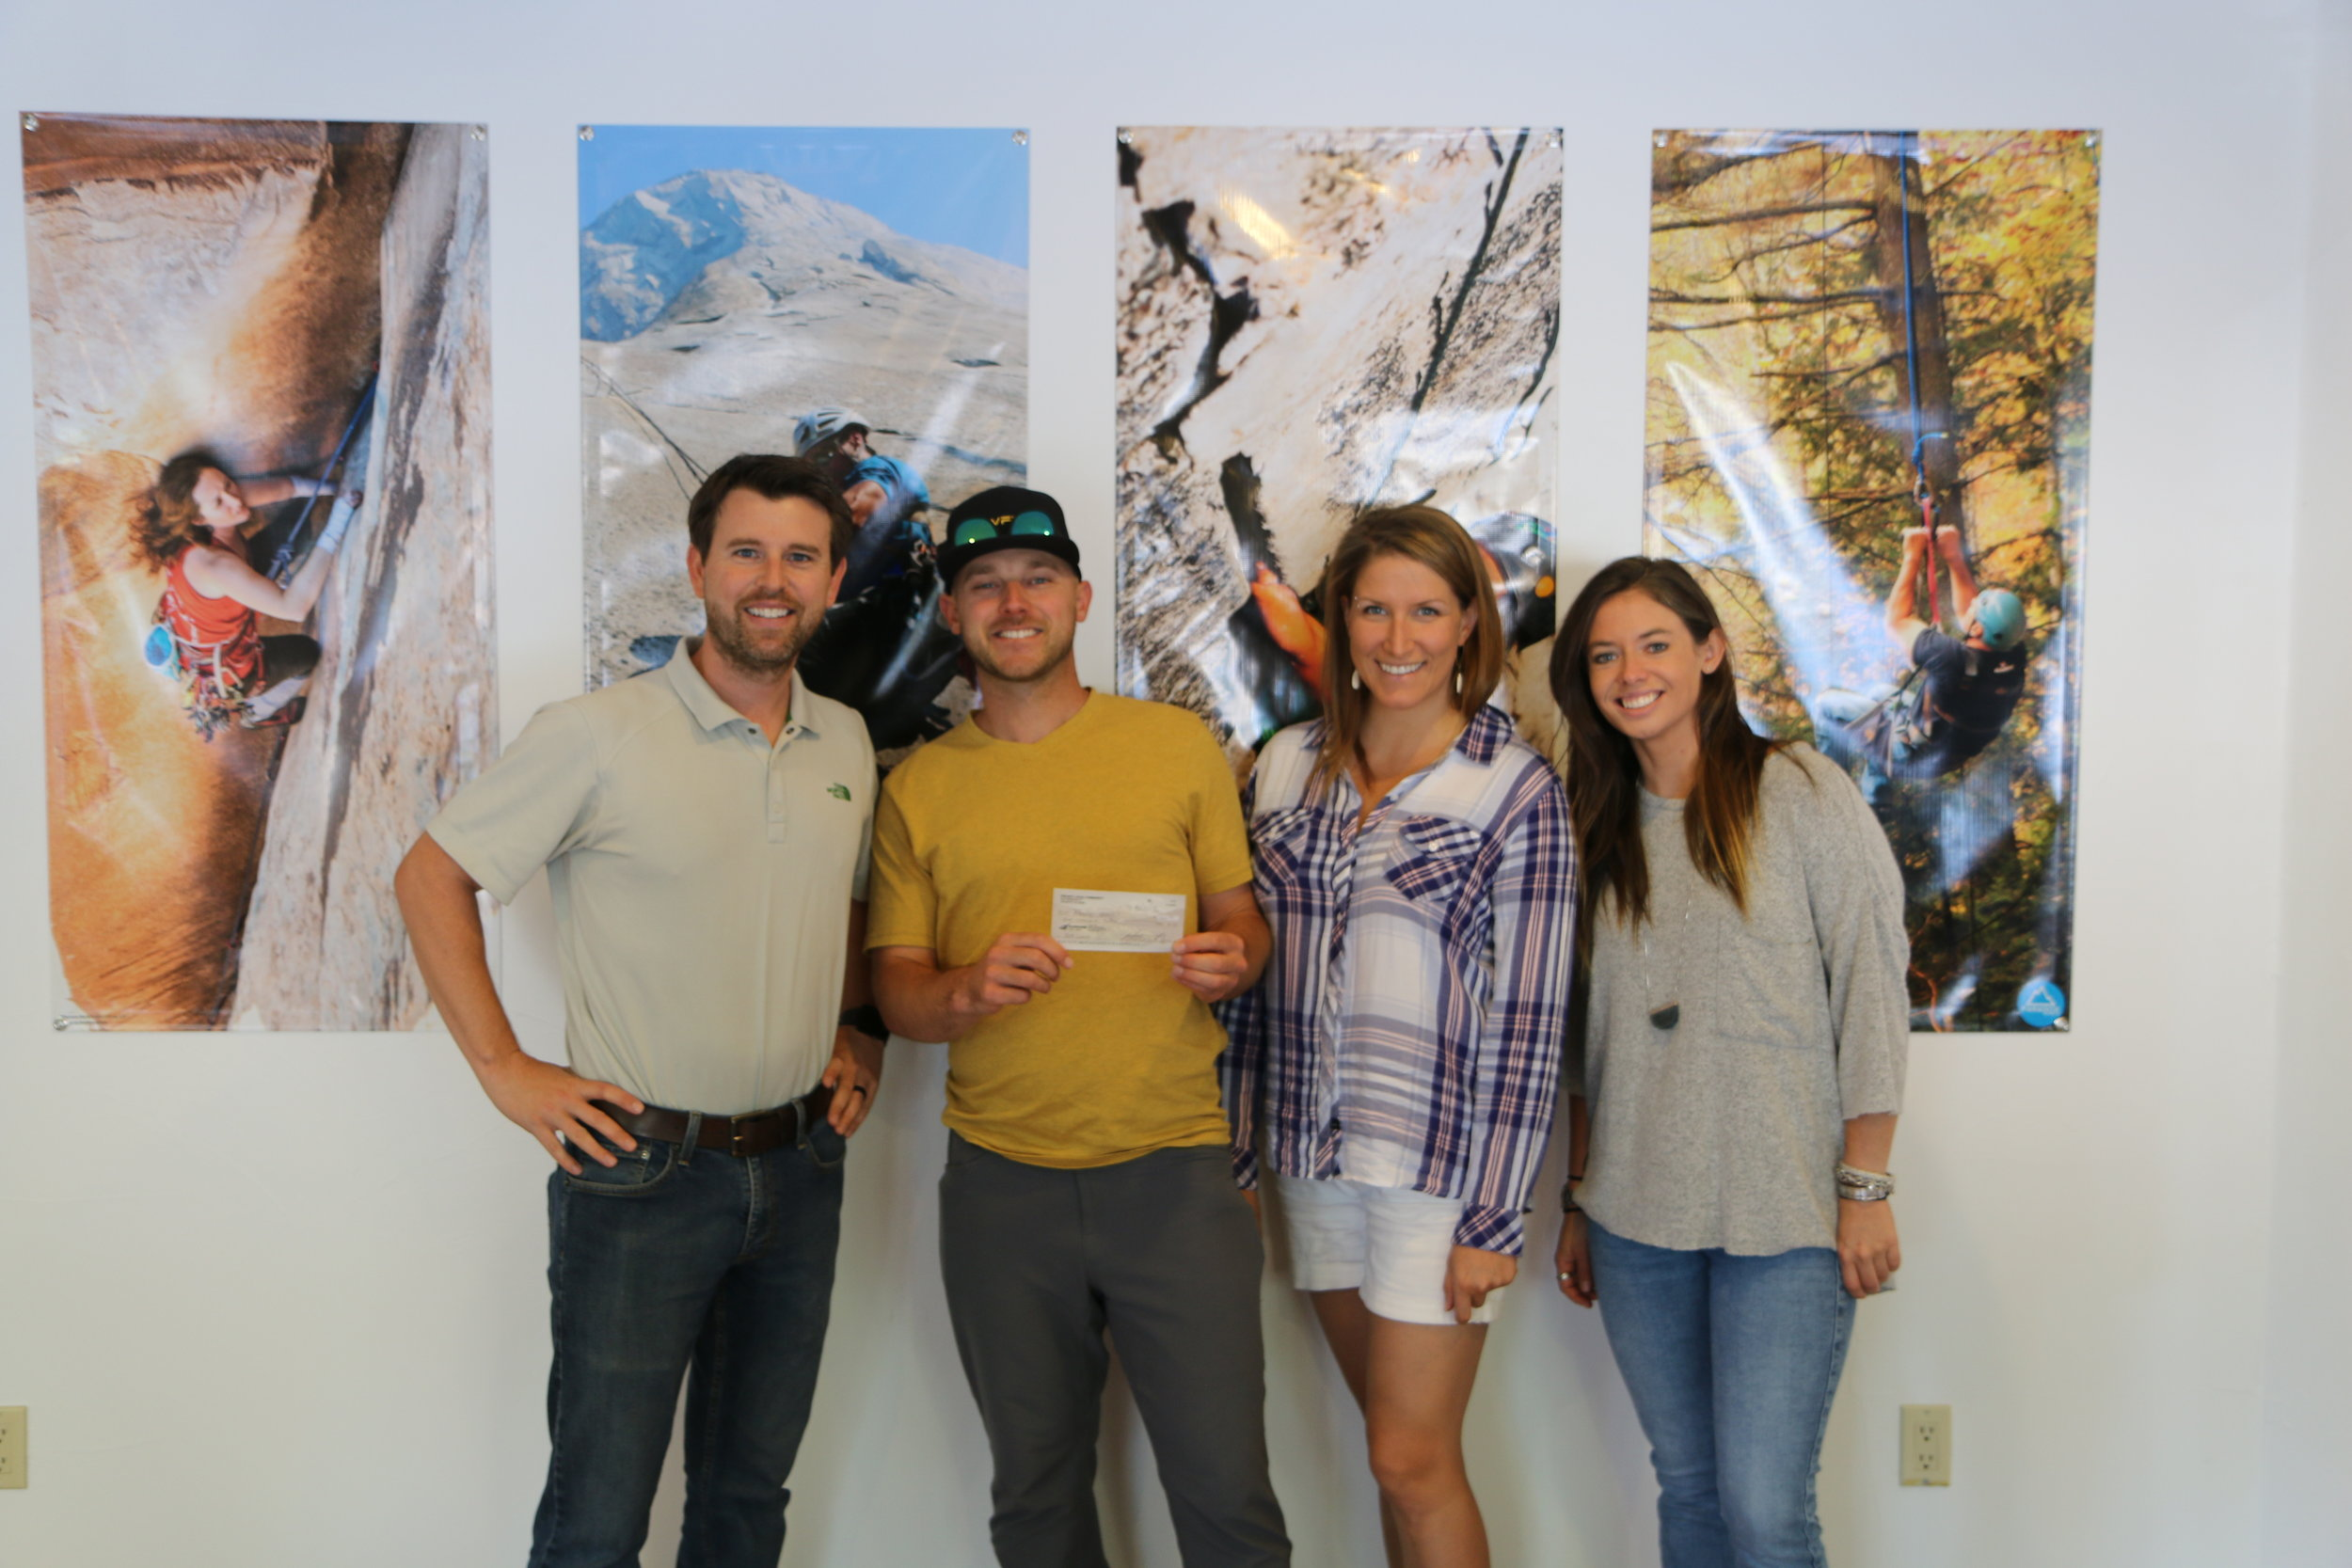 Grant award to Paradox Sports. Paradox seeks to revolutionize lives through adaptive climbing opportunities that defy convention.